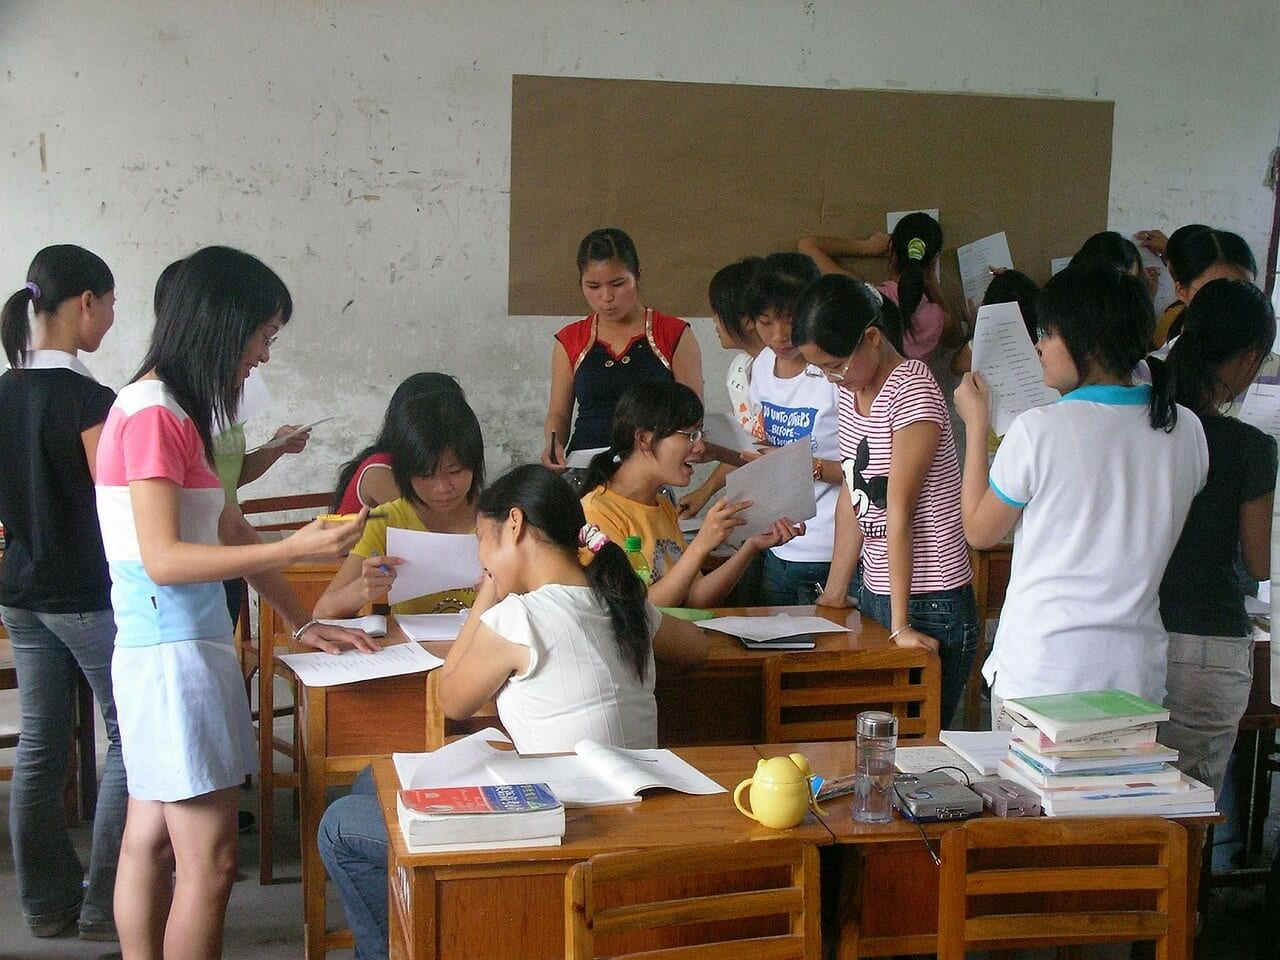 TESOL Review: Teaching English with the JET Programme